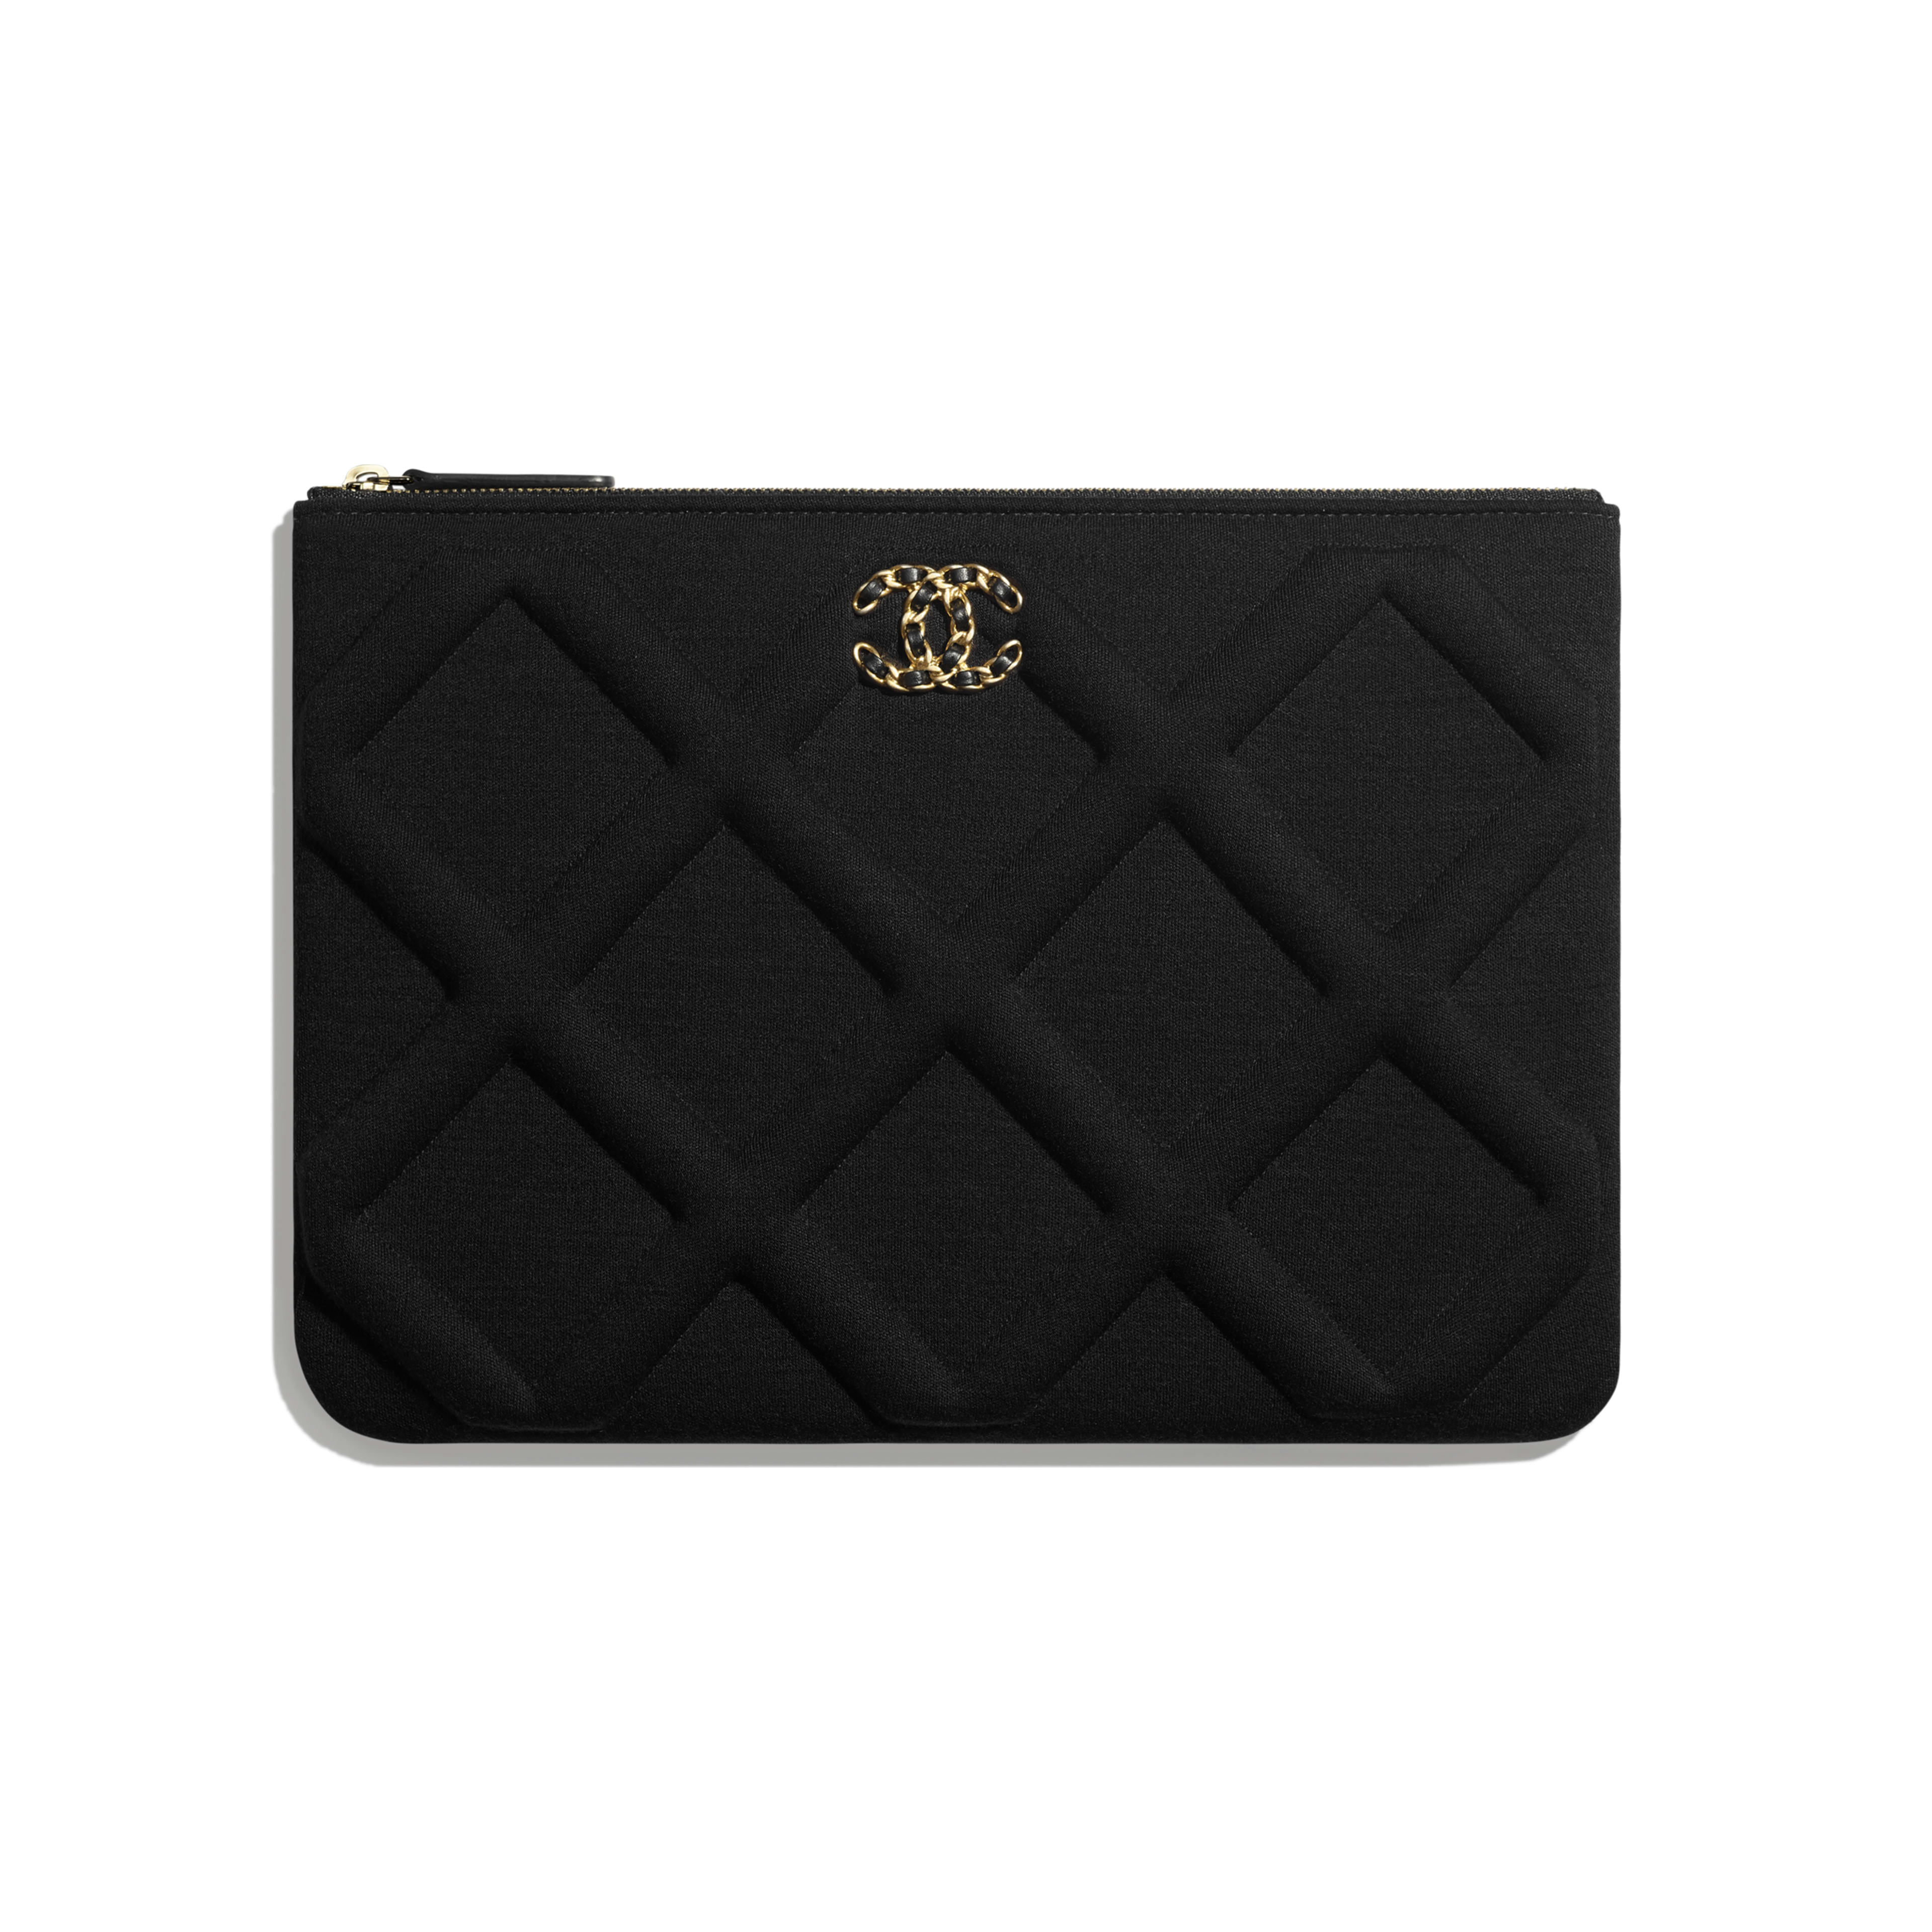 CHANEL 19 Pouch - Black - Jersey, Gold-Tone, Silver-Tone & Ruthenium-Finish Metal - Default view - see full sized version